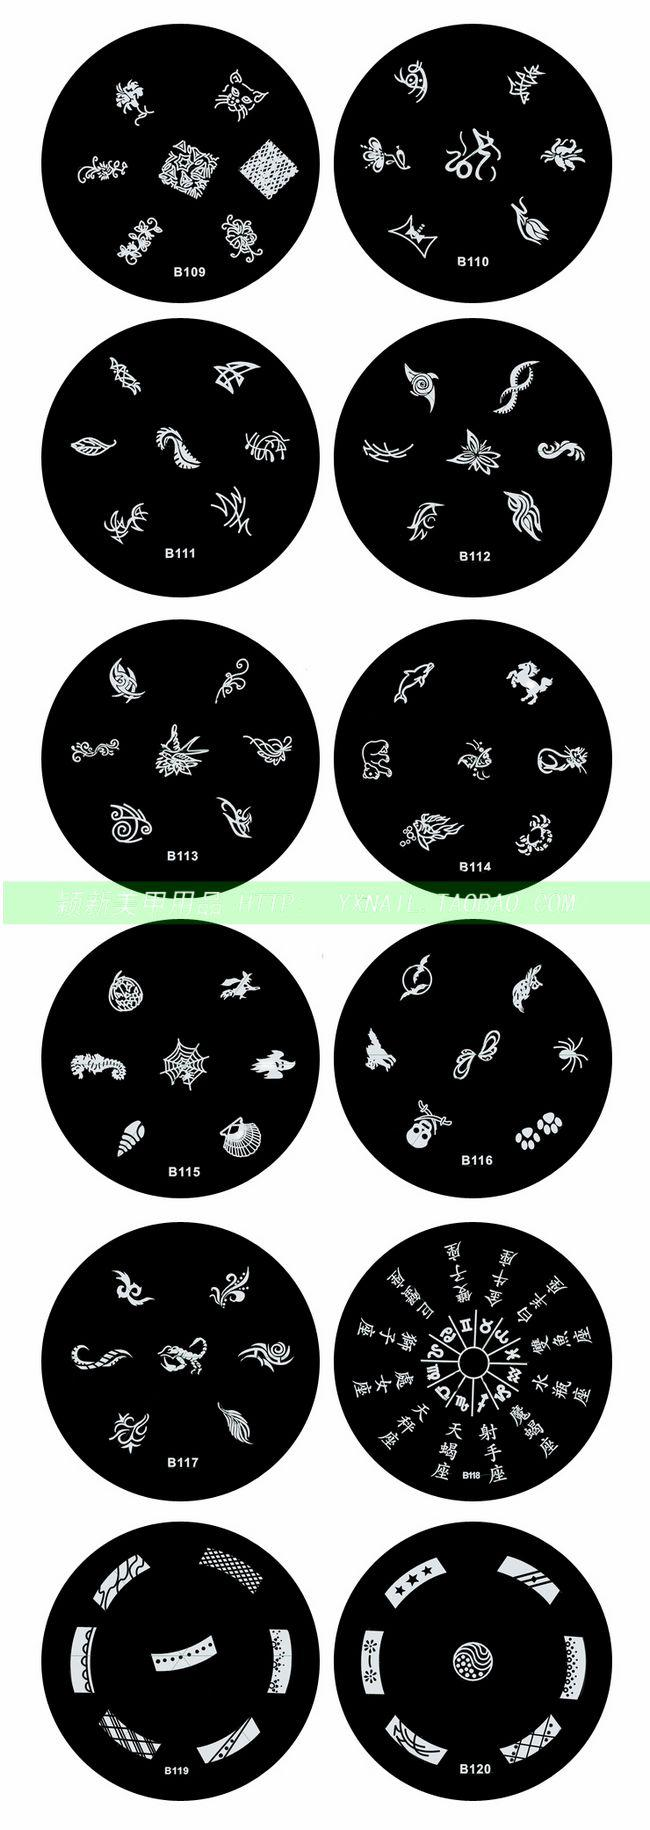 1000x Good quality Stainless Steel Nail Art stamp Stamping Metal Plate Printing Image Plate Design Template 120 Designs